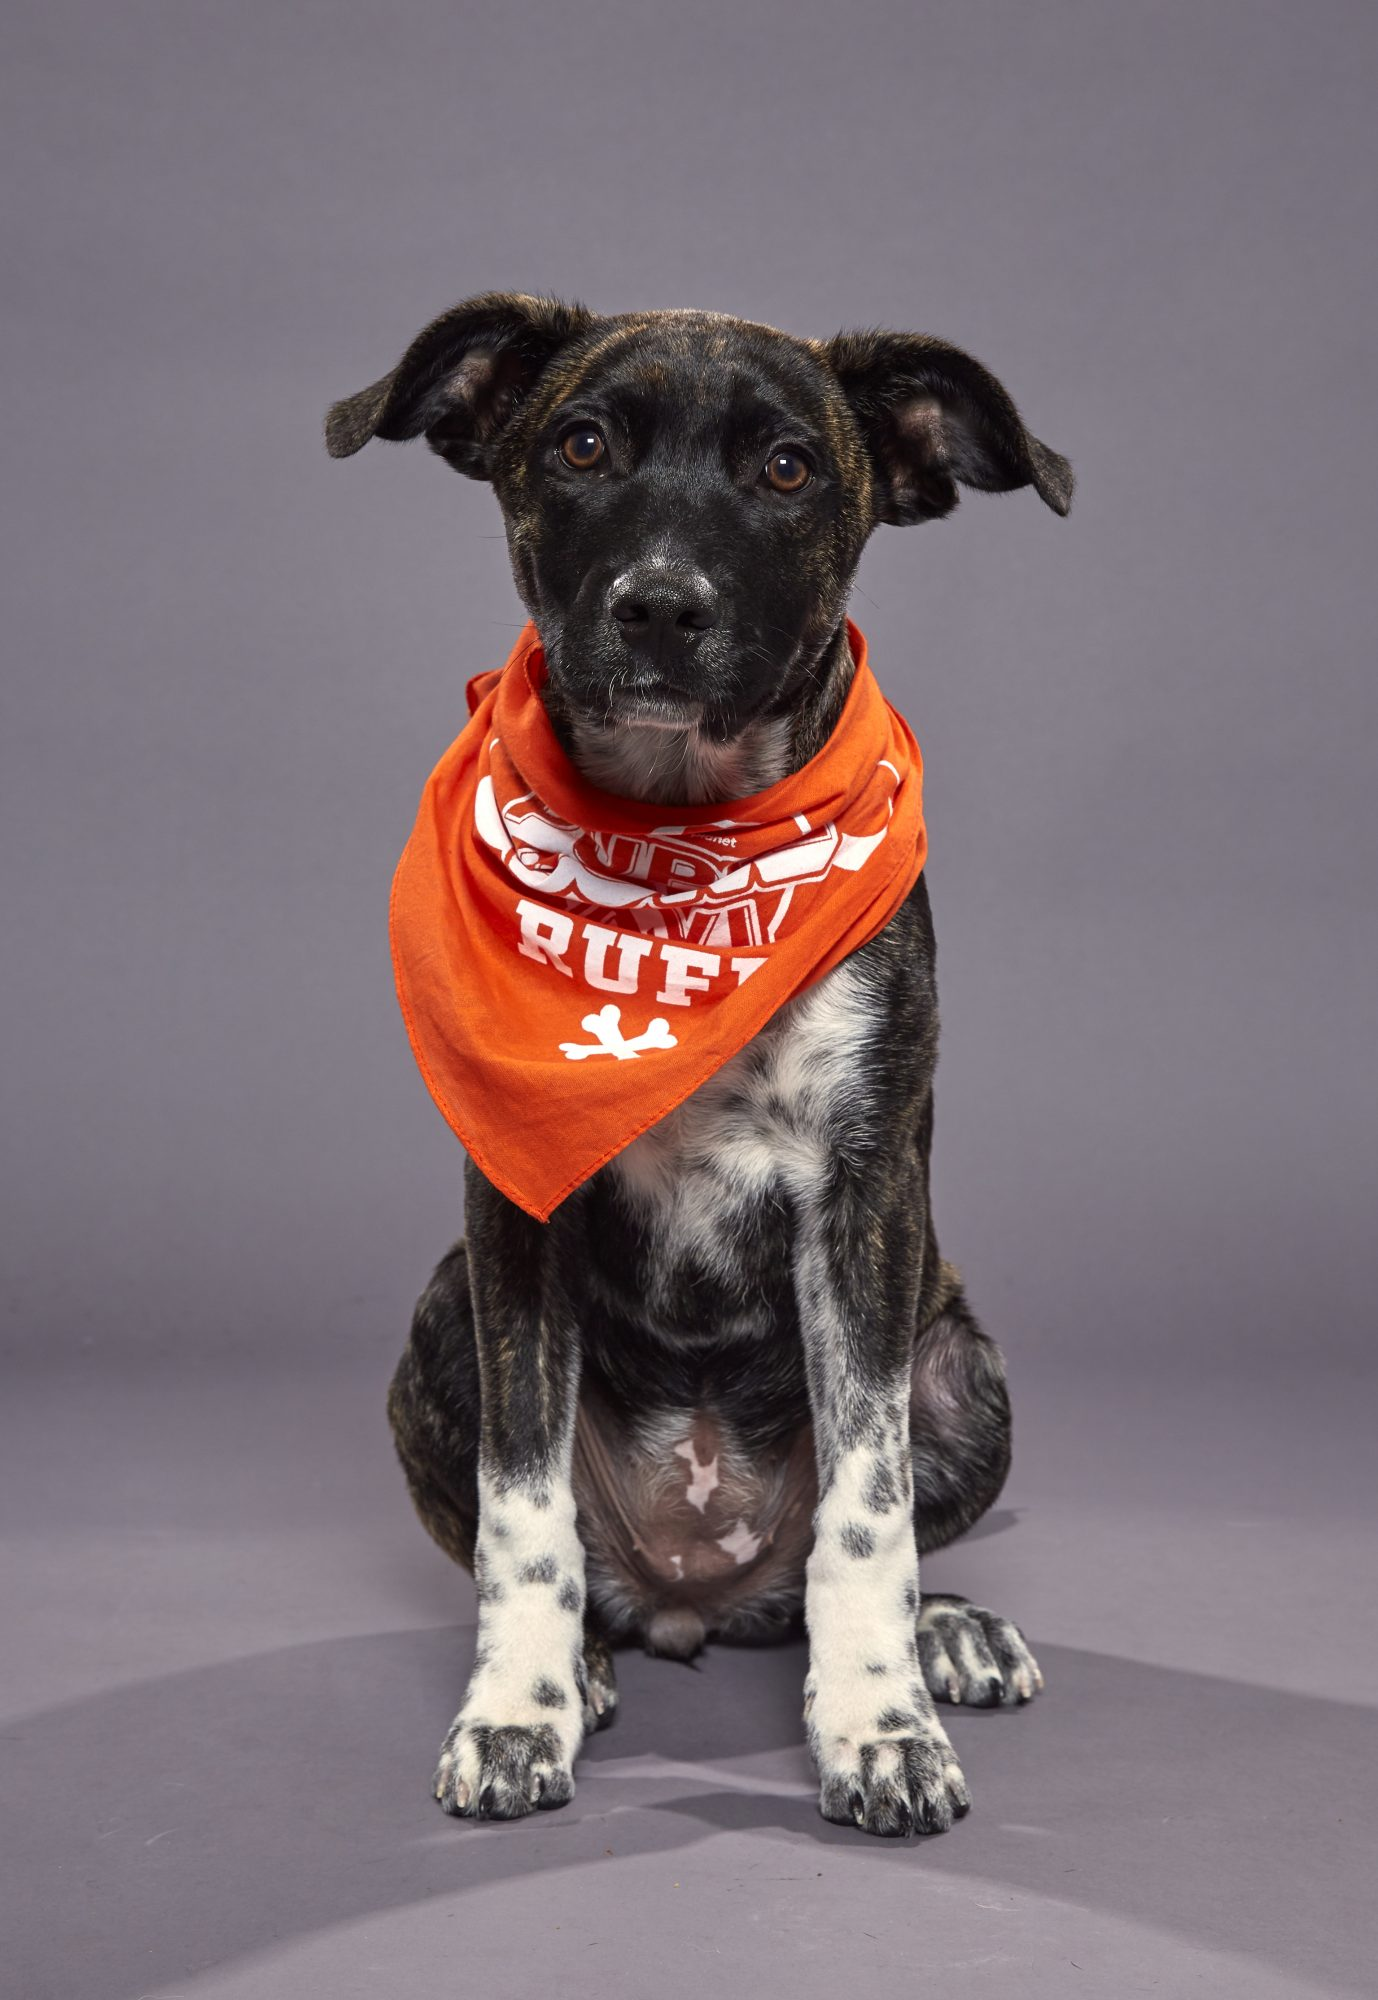 Team: Ruff                             Rescue: Foster Dogs NYC of New York City